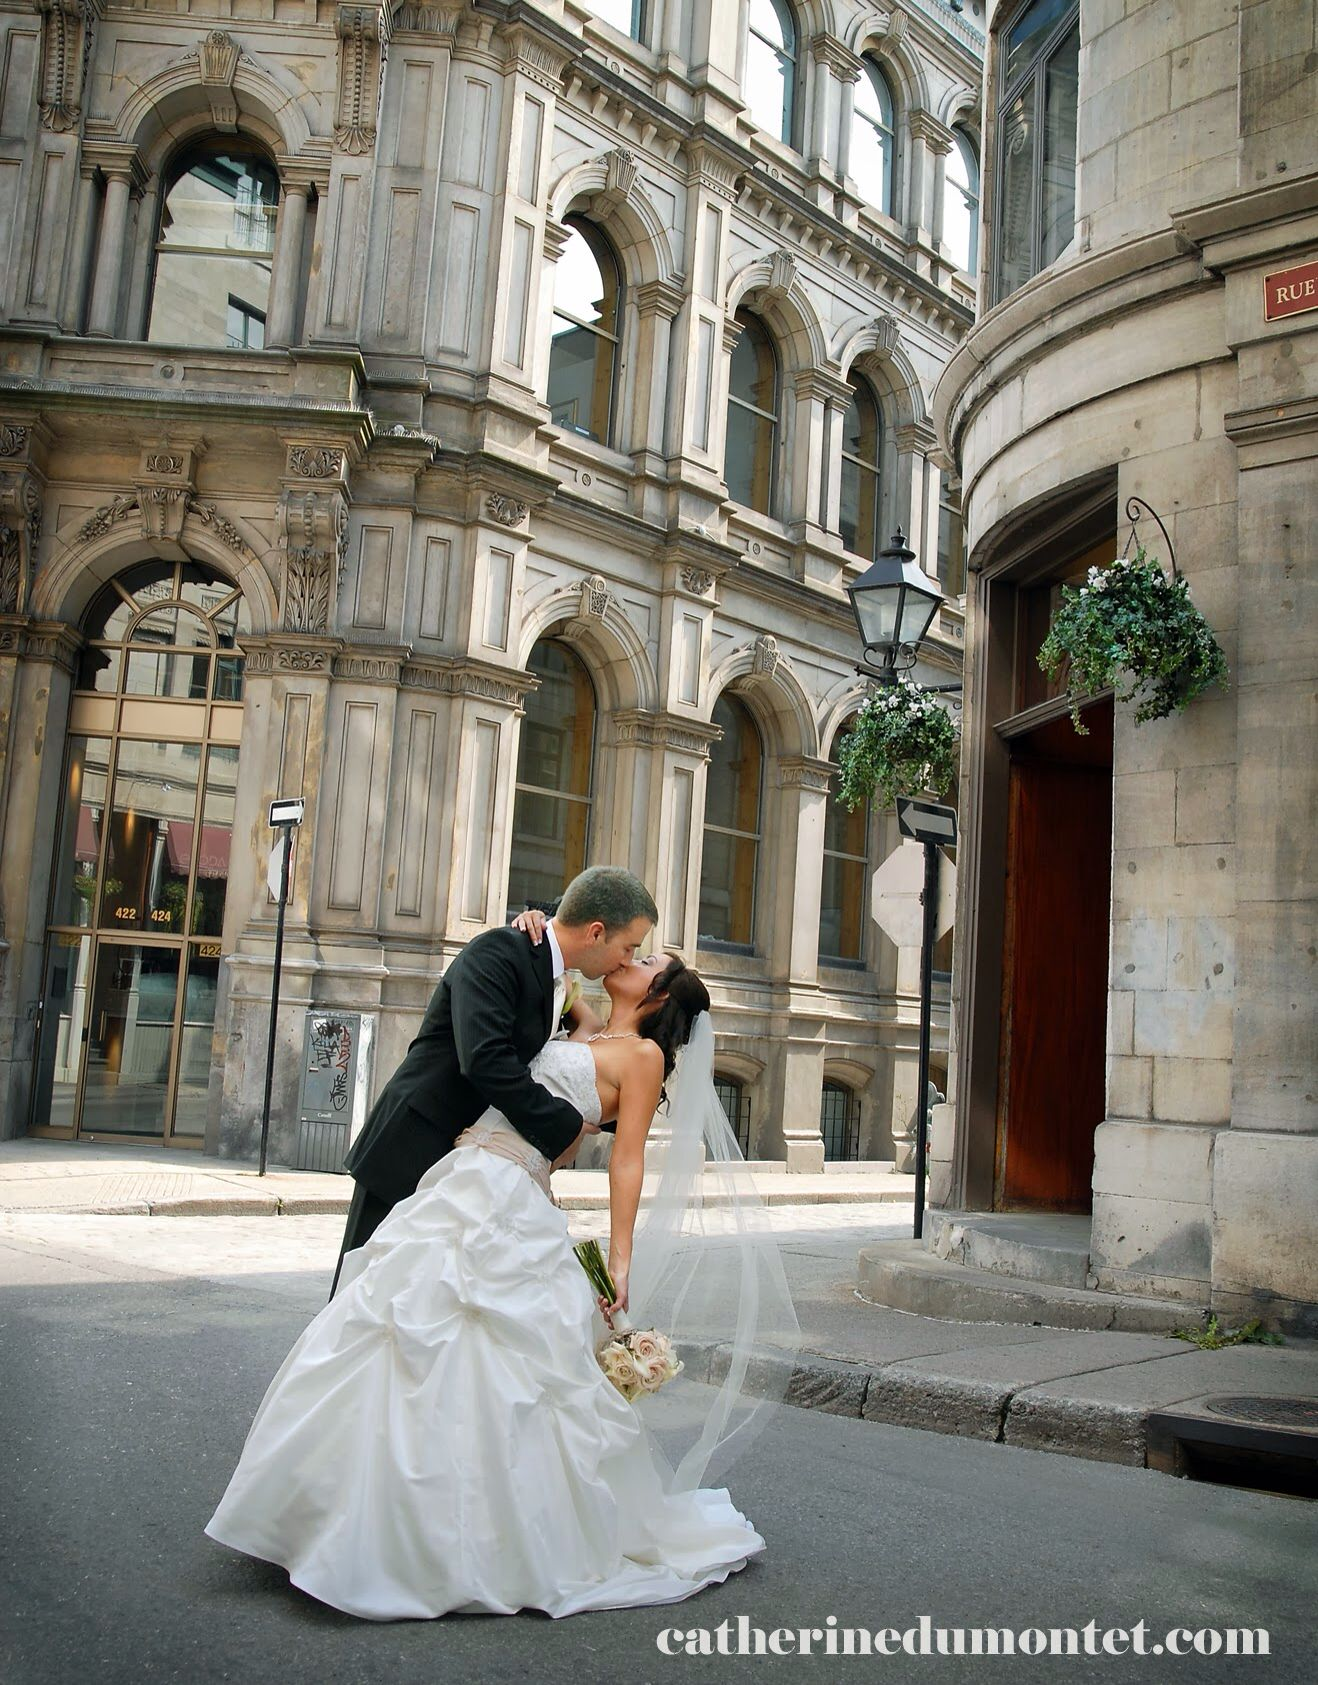 Love this wedding pose! Bride and groom kissing while dipping